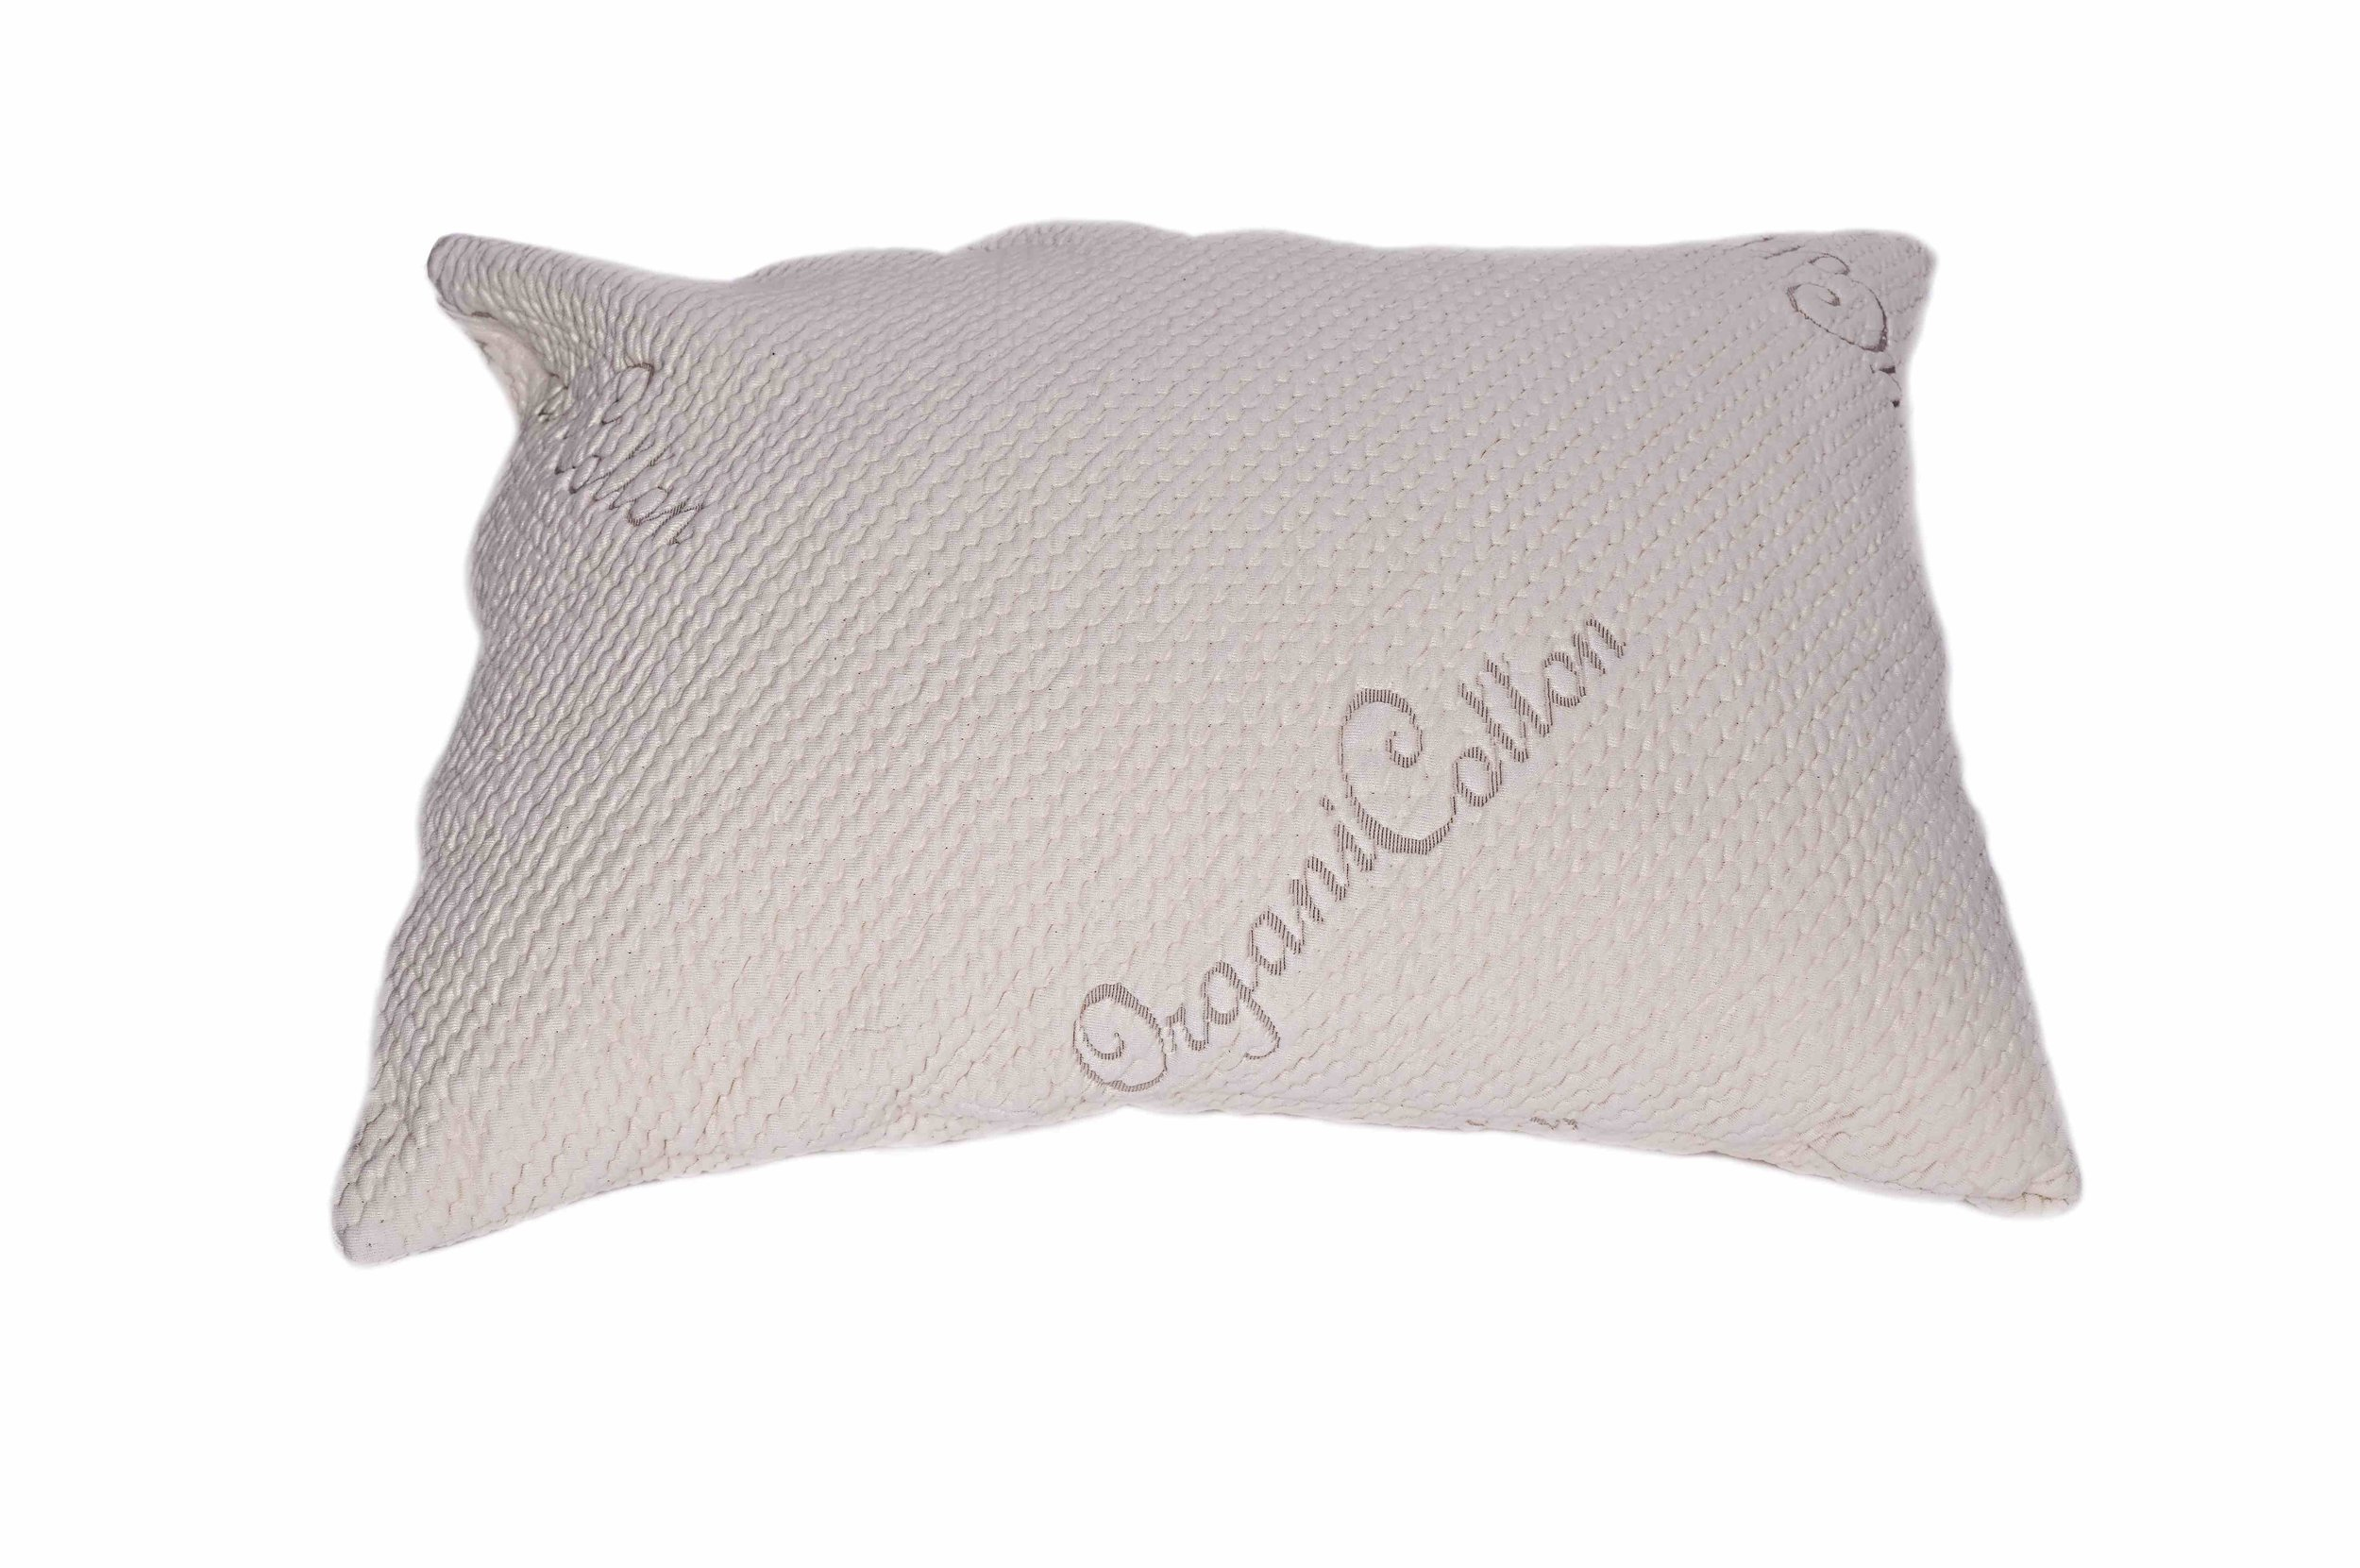 V&R Naturals Adjustable Queen Pillow - Organic Cotton Cover - Mix Blend of Latex Noodles and Kapok Silk (60%/40%)